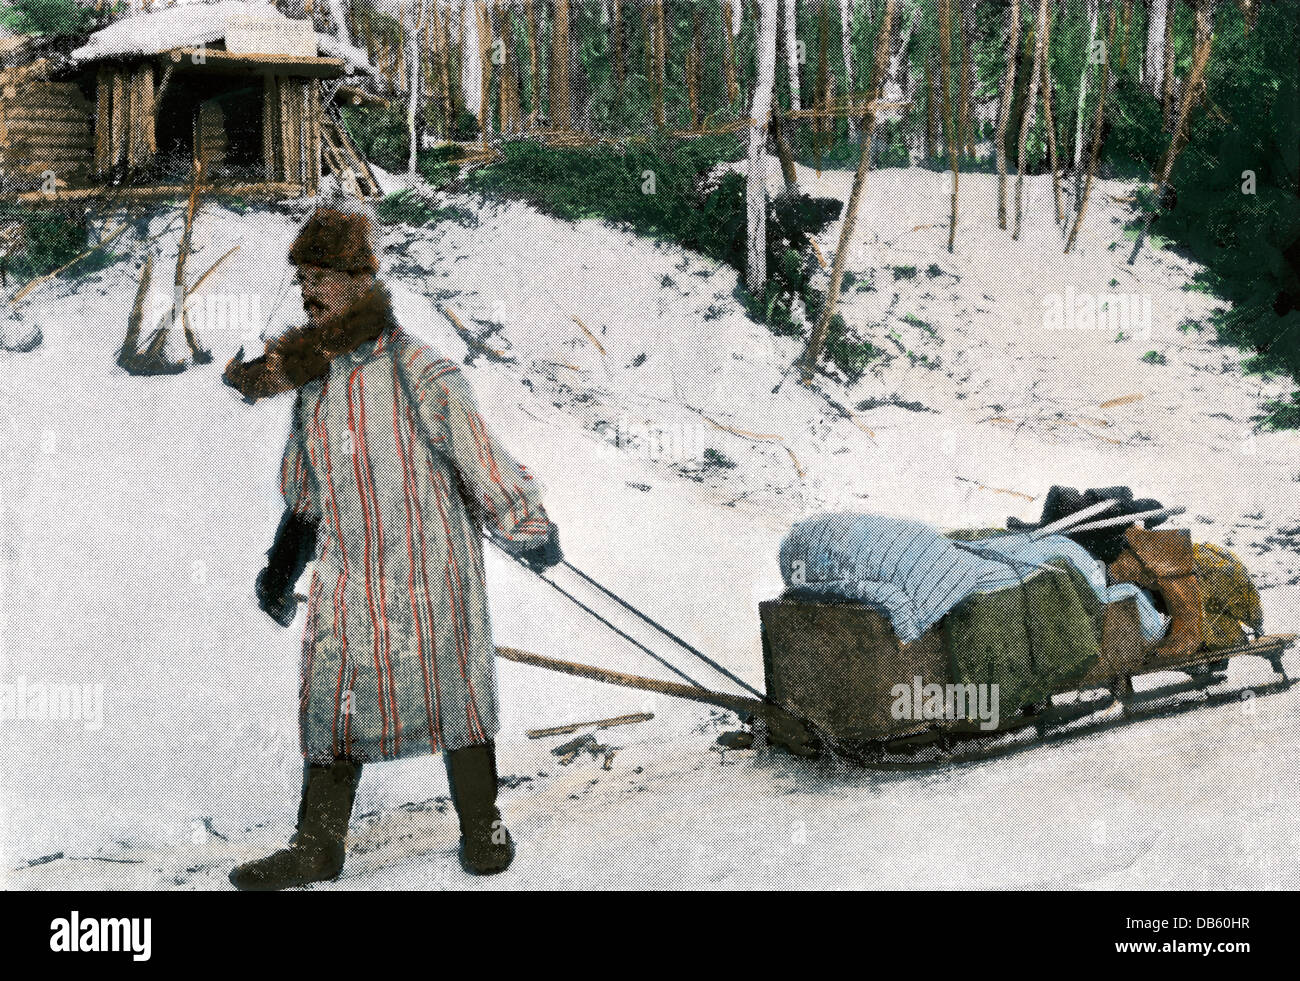 Prospector in the Klondyke with his equipment and sled, 1898. Hand-colored halftone reproduction of a photograph - Stock Image